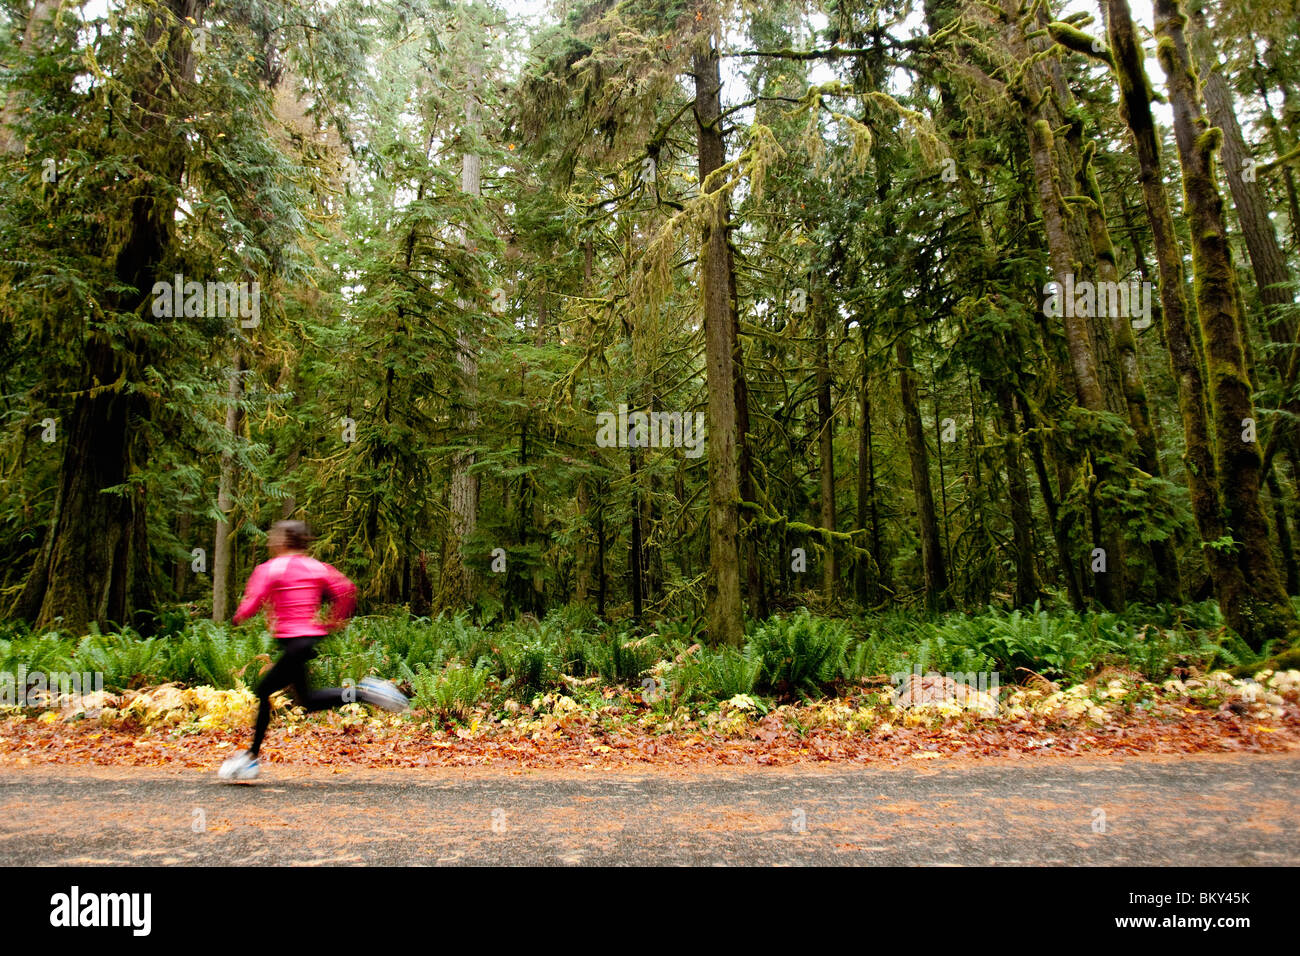 A female jogging down a road next to tall trees covered in moss. - Stock Image